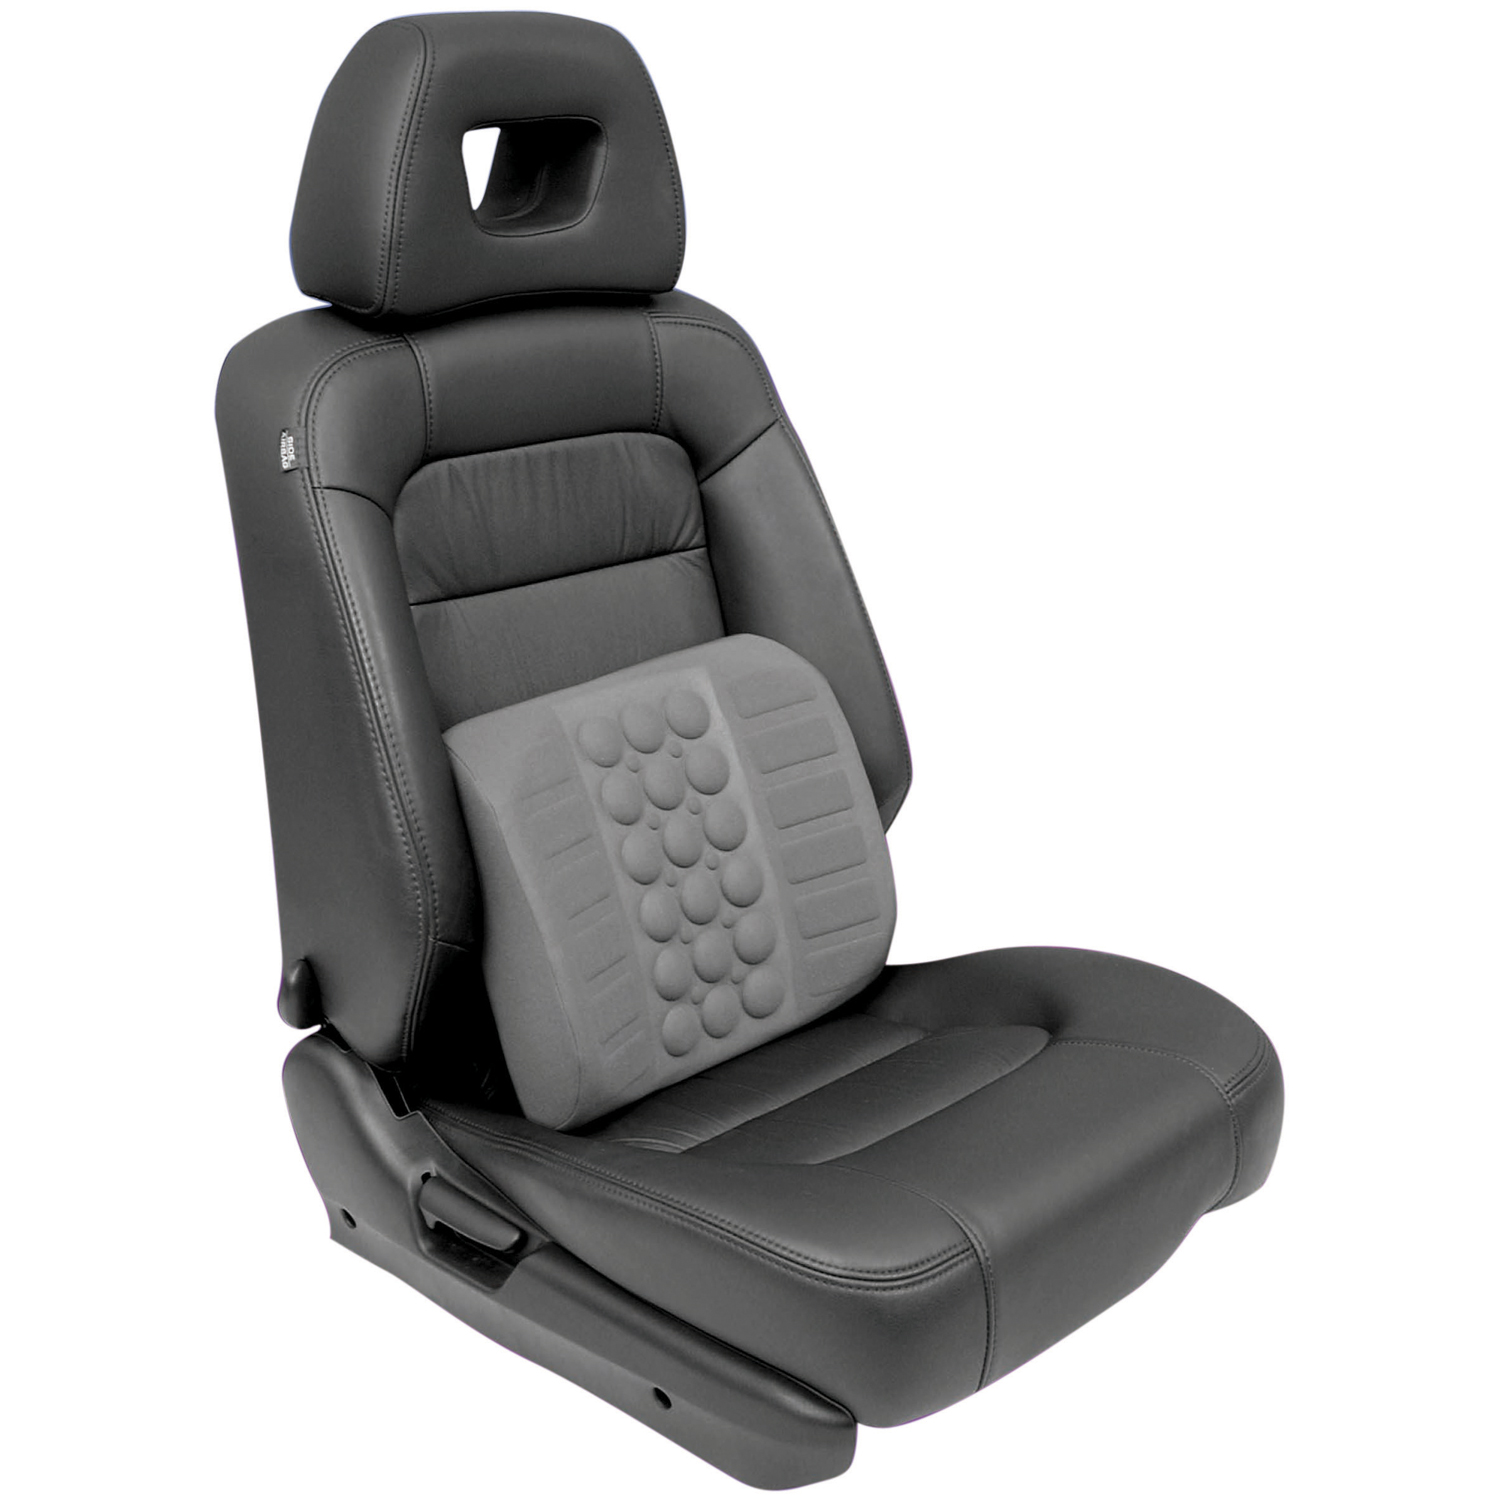 new car seat lumbar back support travel cushion comfort when driving. Black Bedroom Furniture Sets. Home Design Ideas